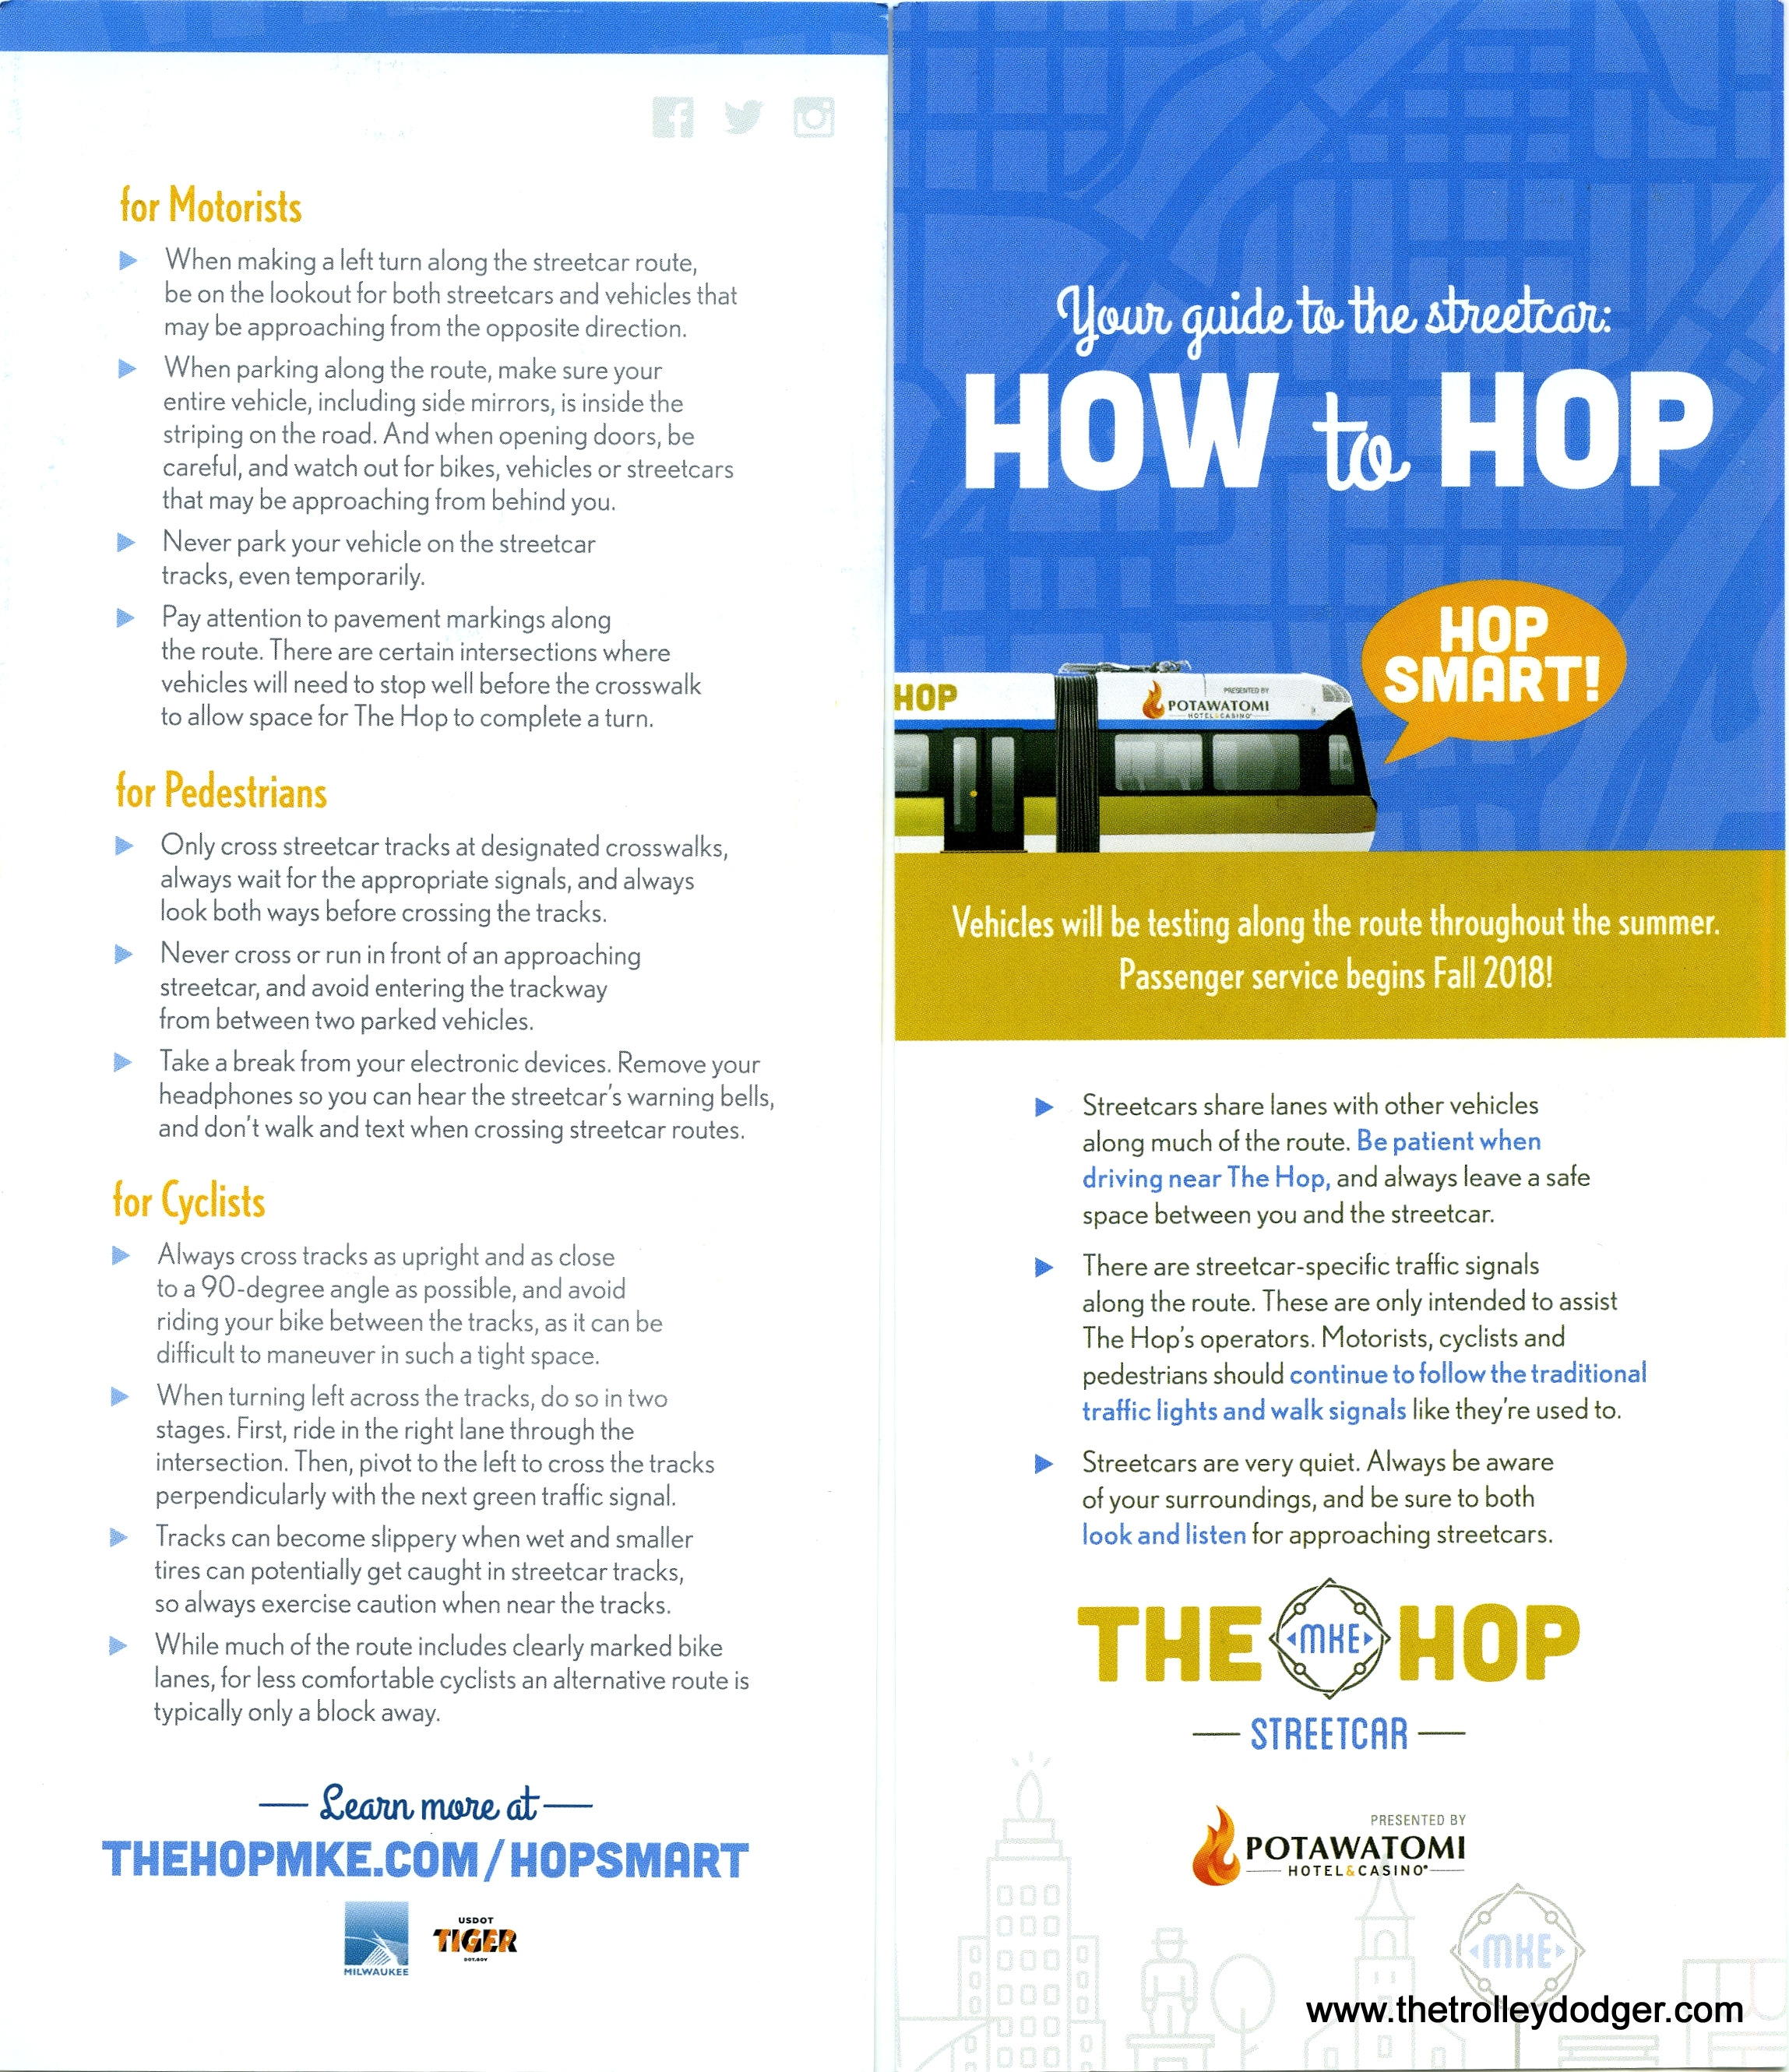 At the Hop – The Trolley Dodger